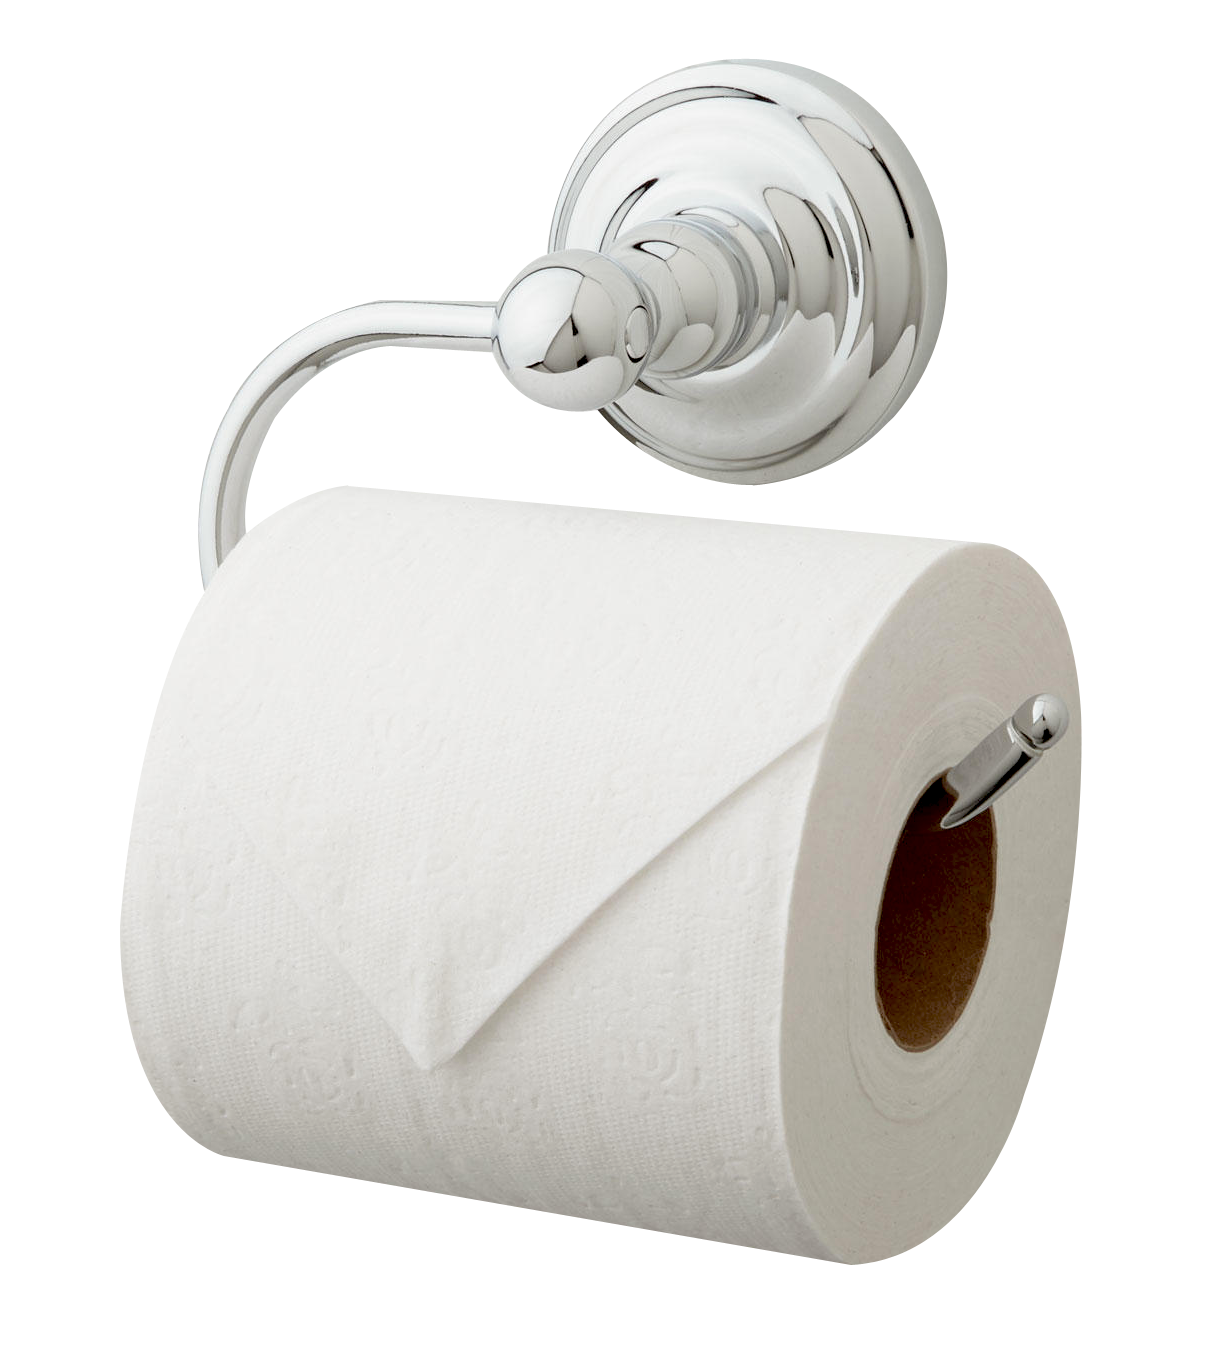 Clipart bathroom object. Toilet paper png image